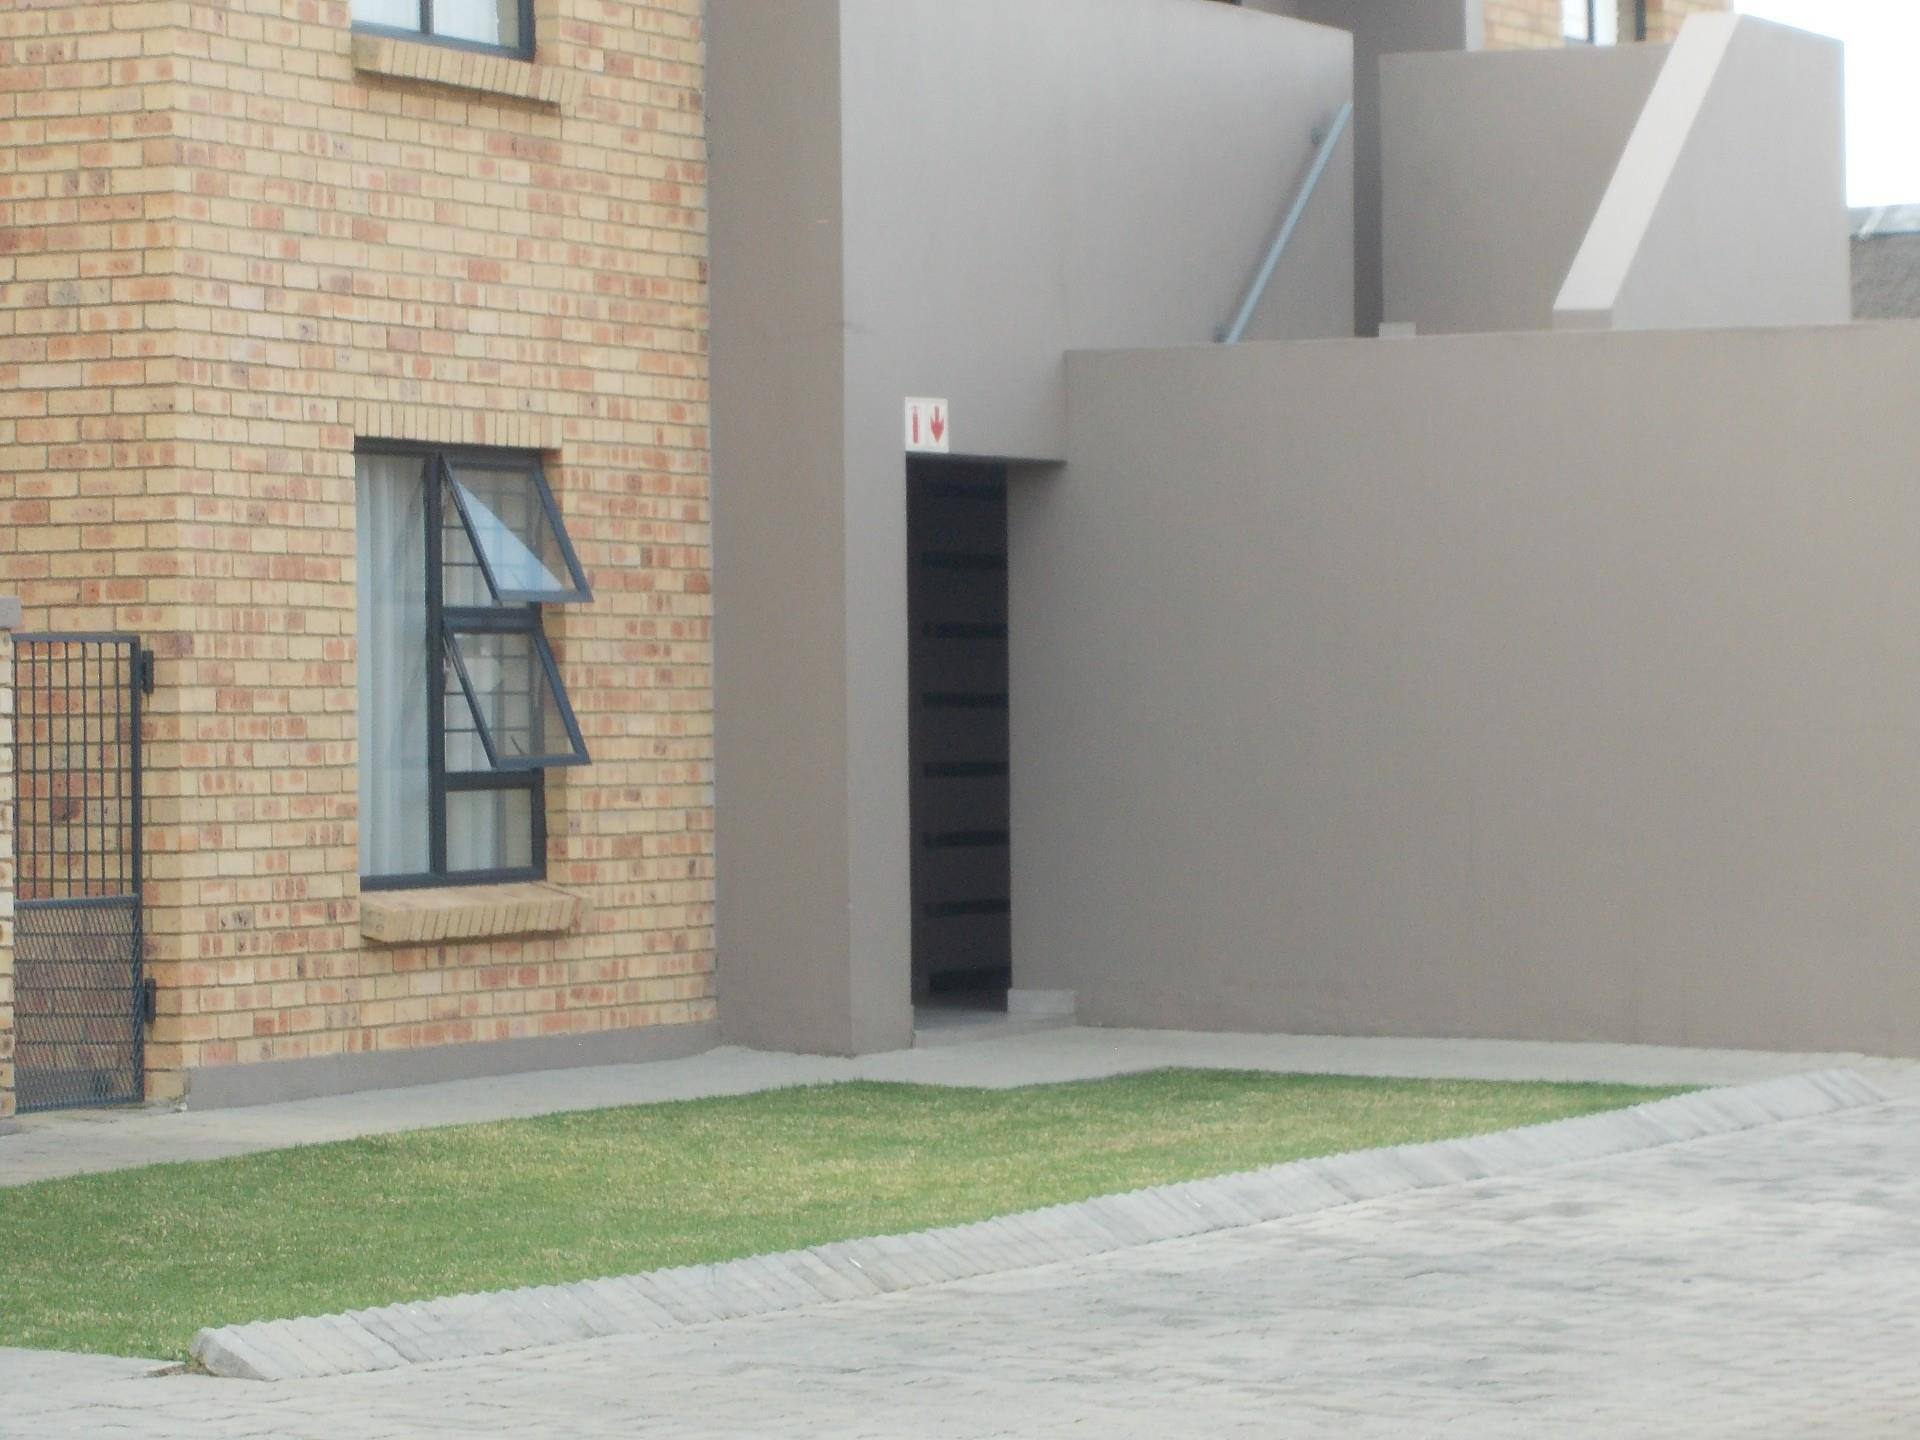 2 Bedroom Townhouse To Rent in New Market